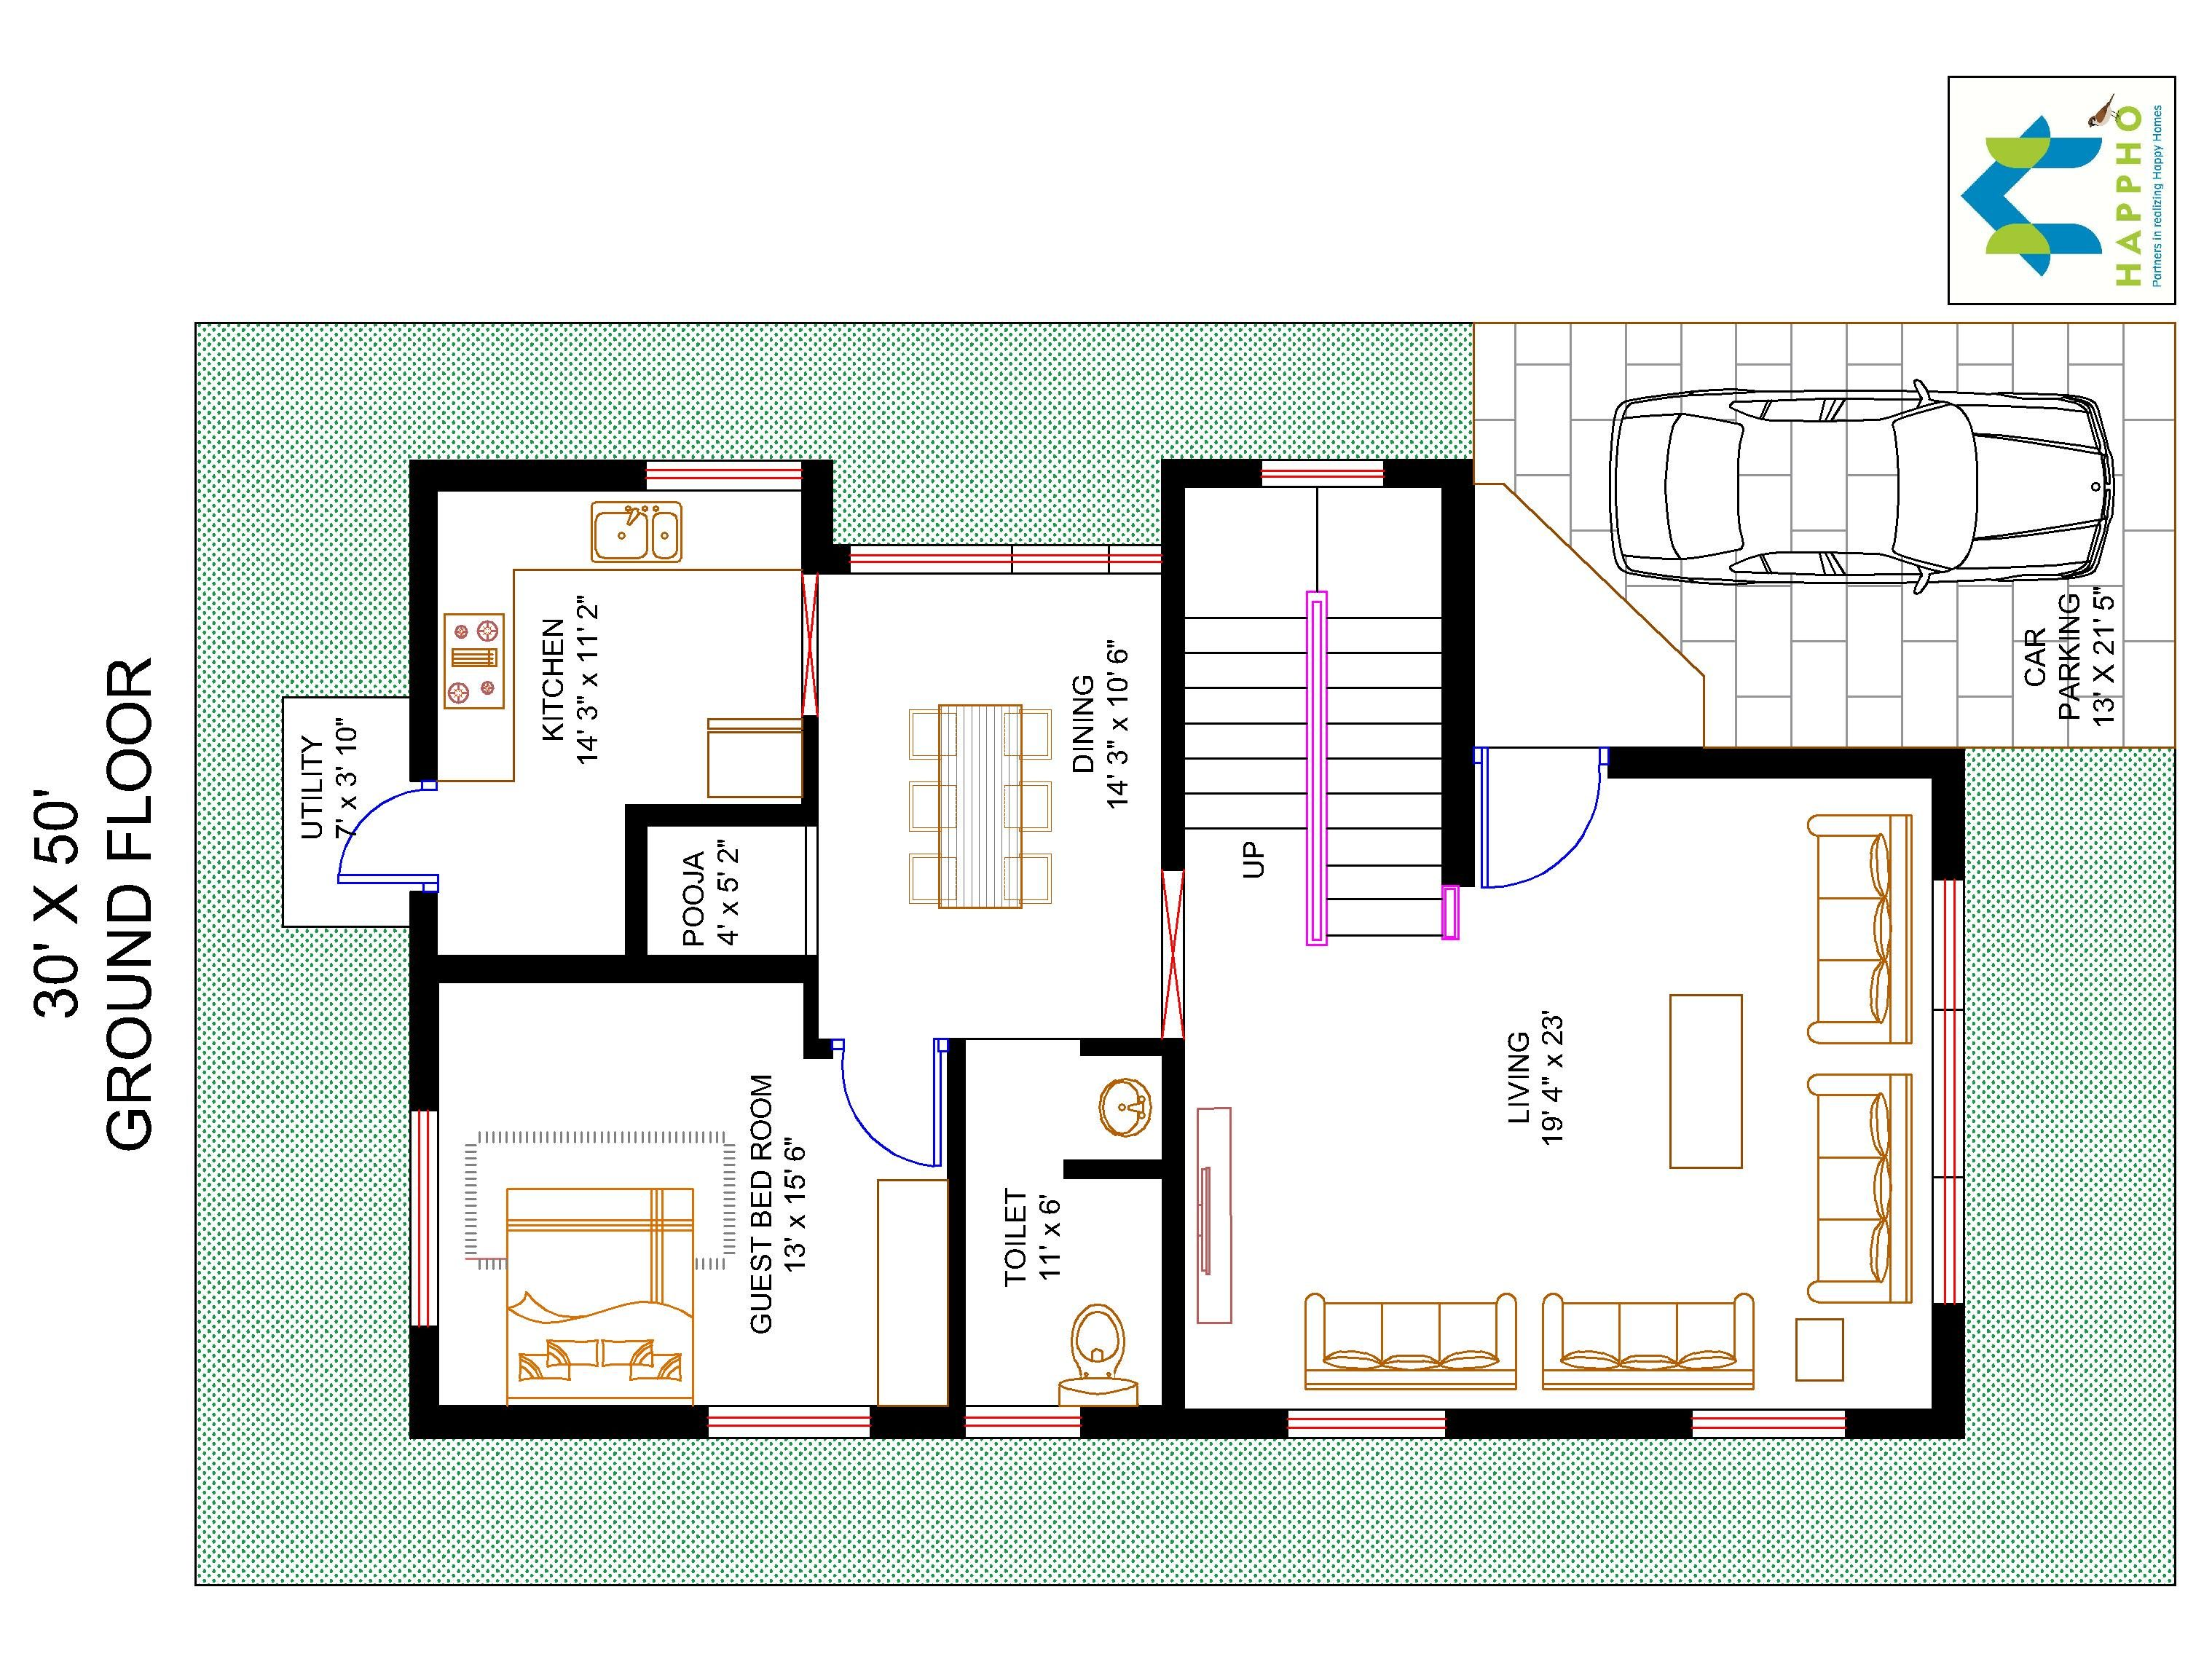 3 bhk floor plan for 30 x 50 plot 1500 square feet 166 for Four bhk bungalow plan